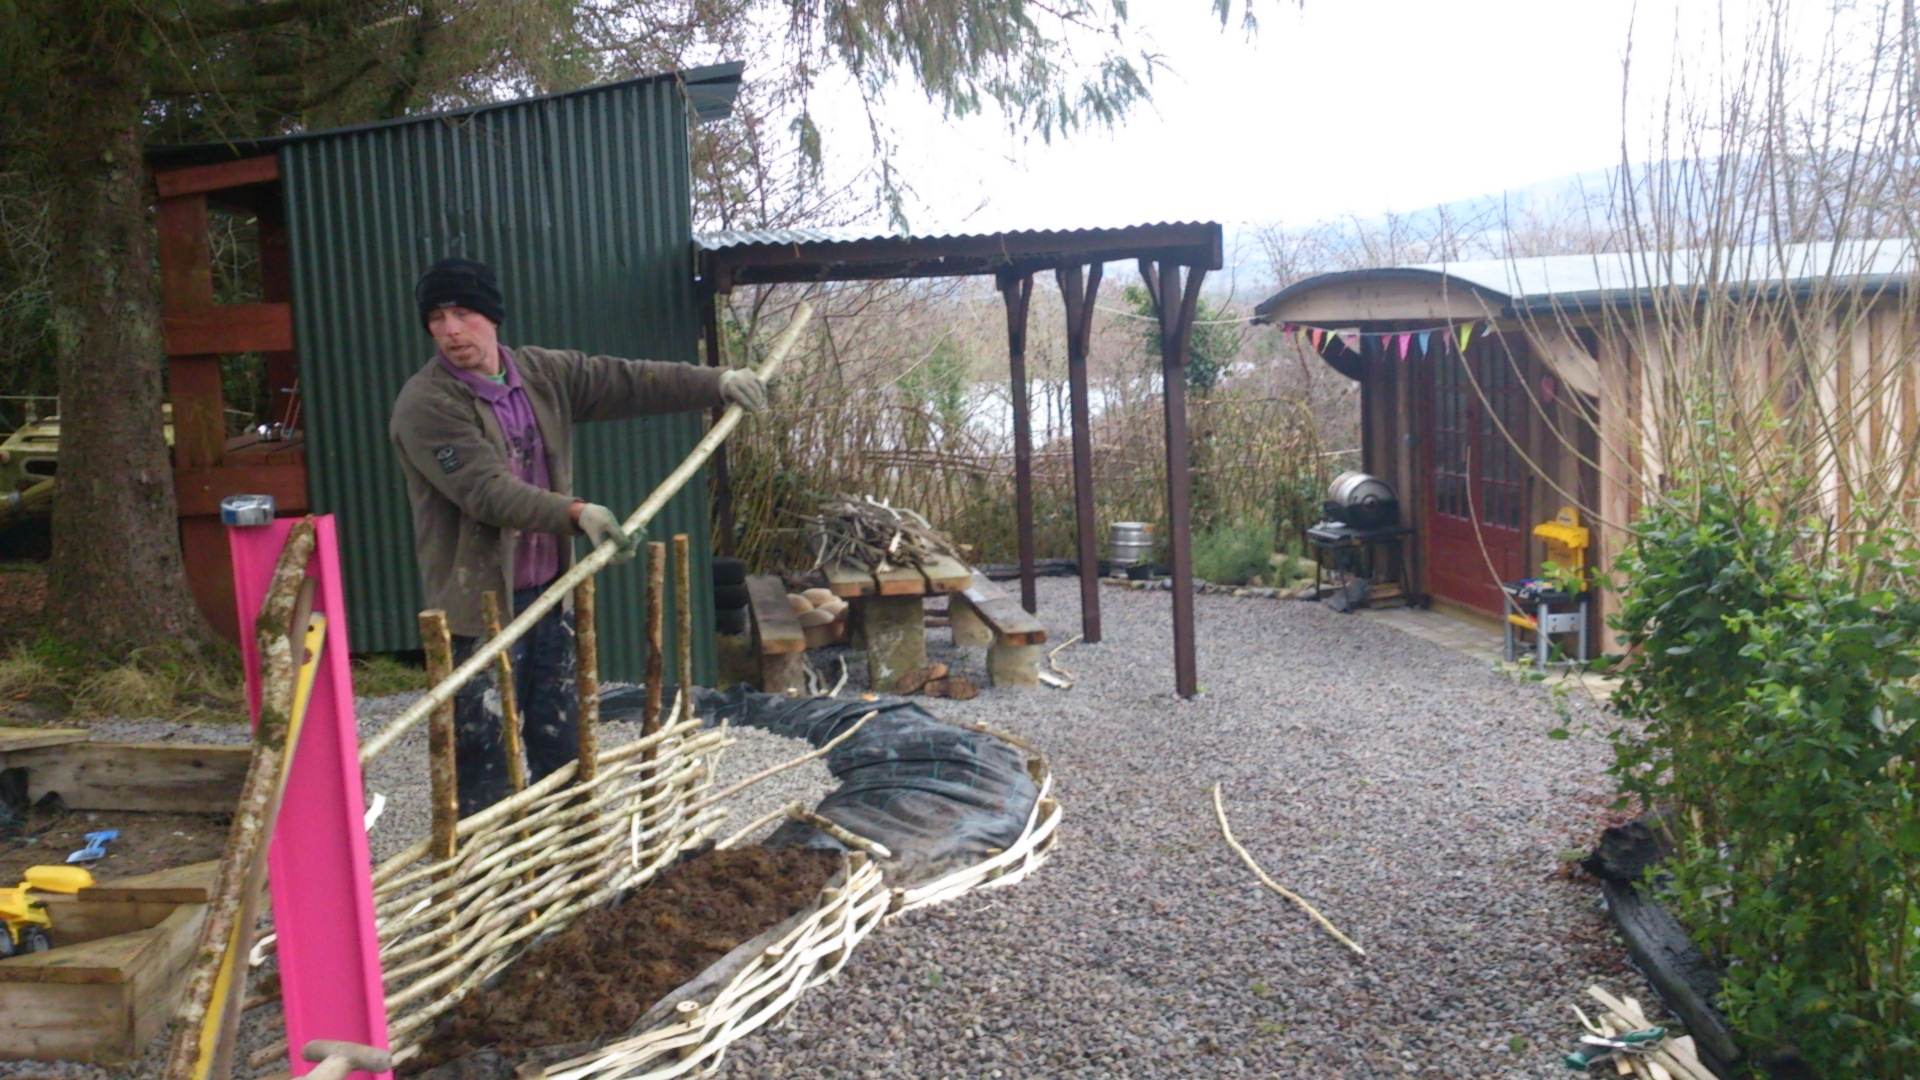 Experience luxury sustainable camping within the heart of nature leitrim eco friendly hazel hurdle fences and live willow hedges in ireland baanklon Gallery